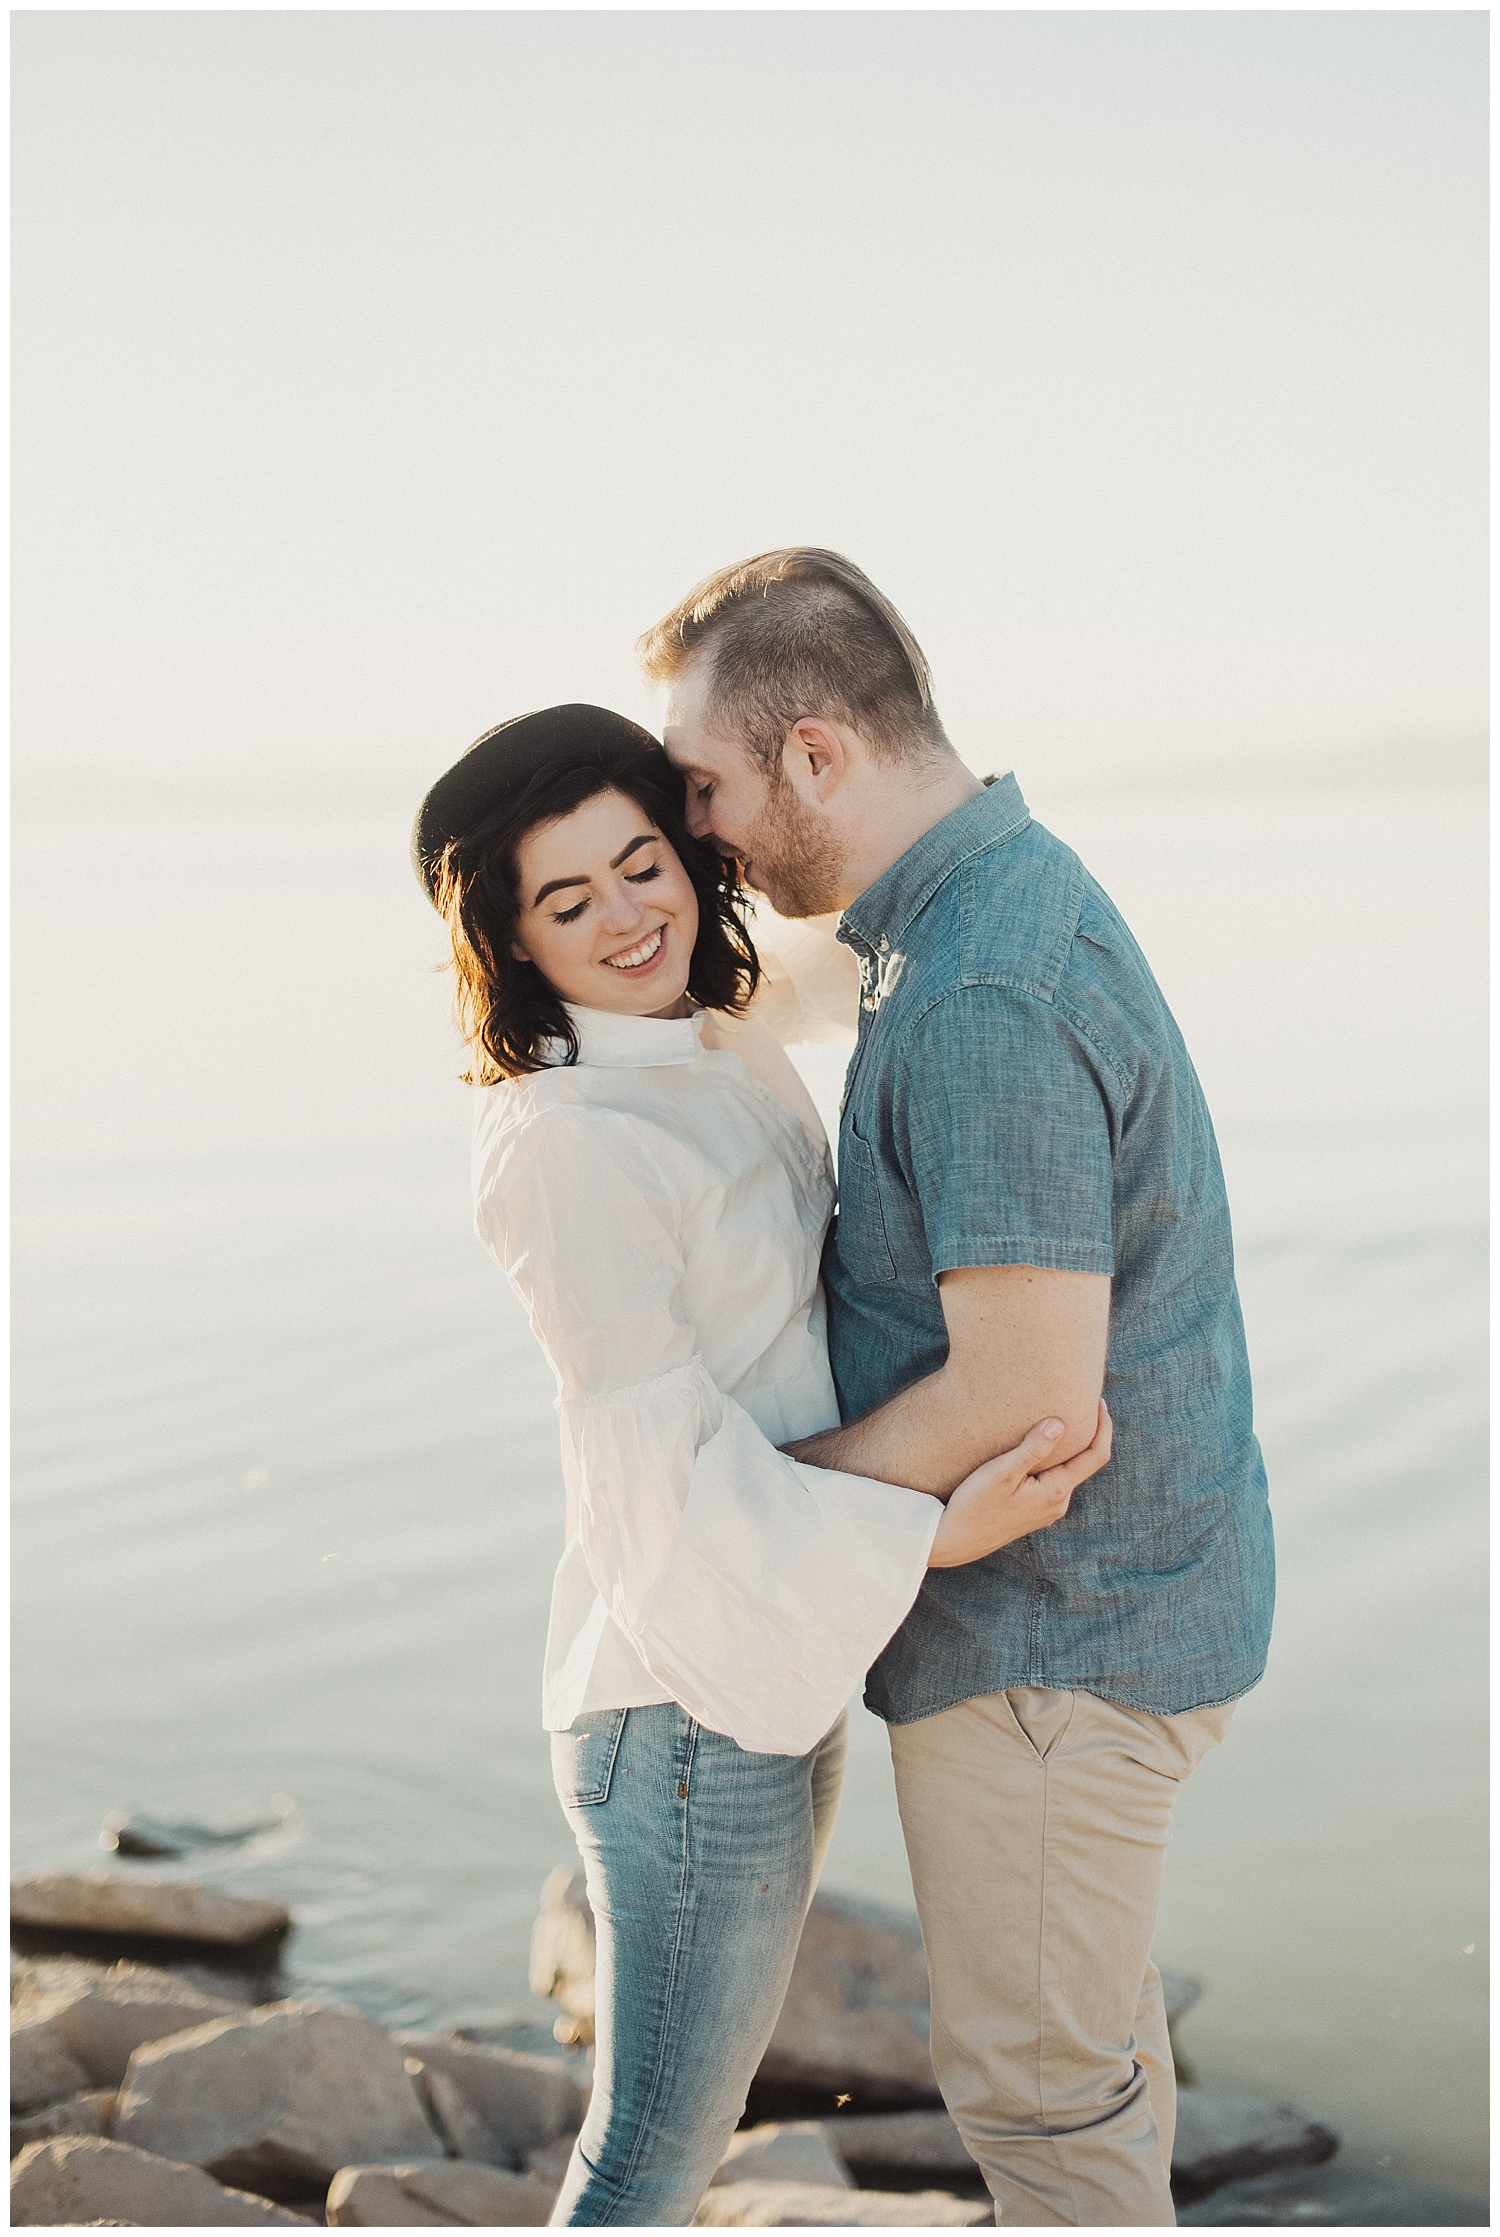 Engagement Session at Provo Boat Harbor